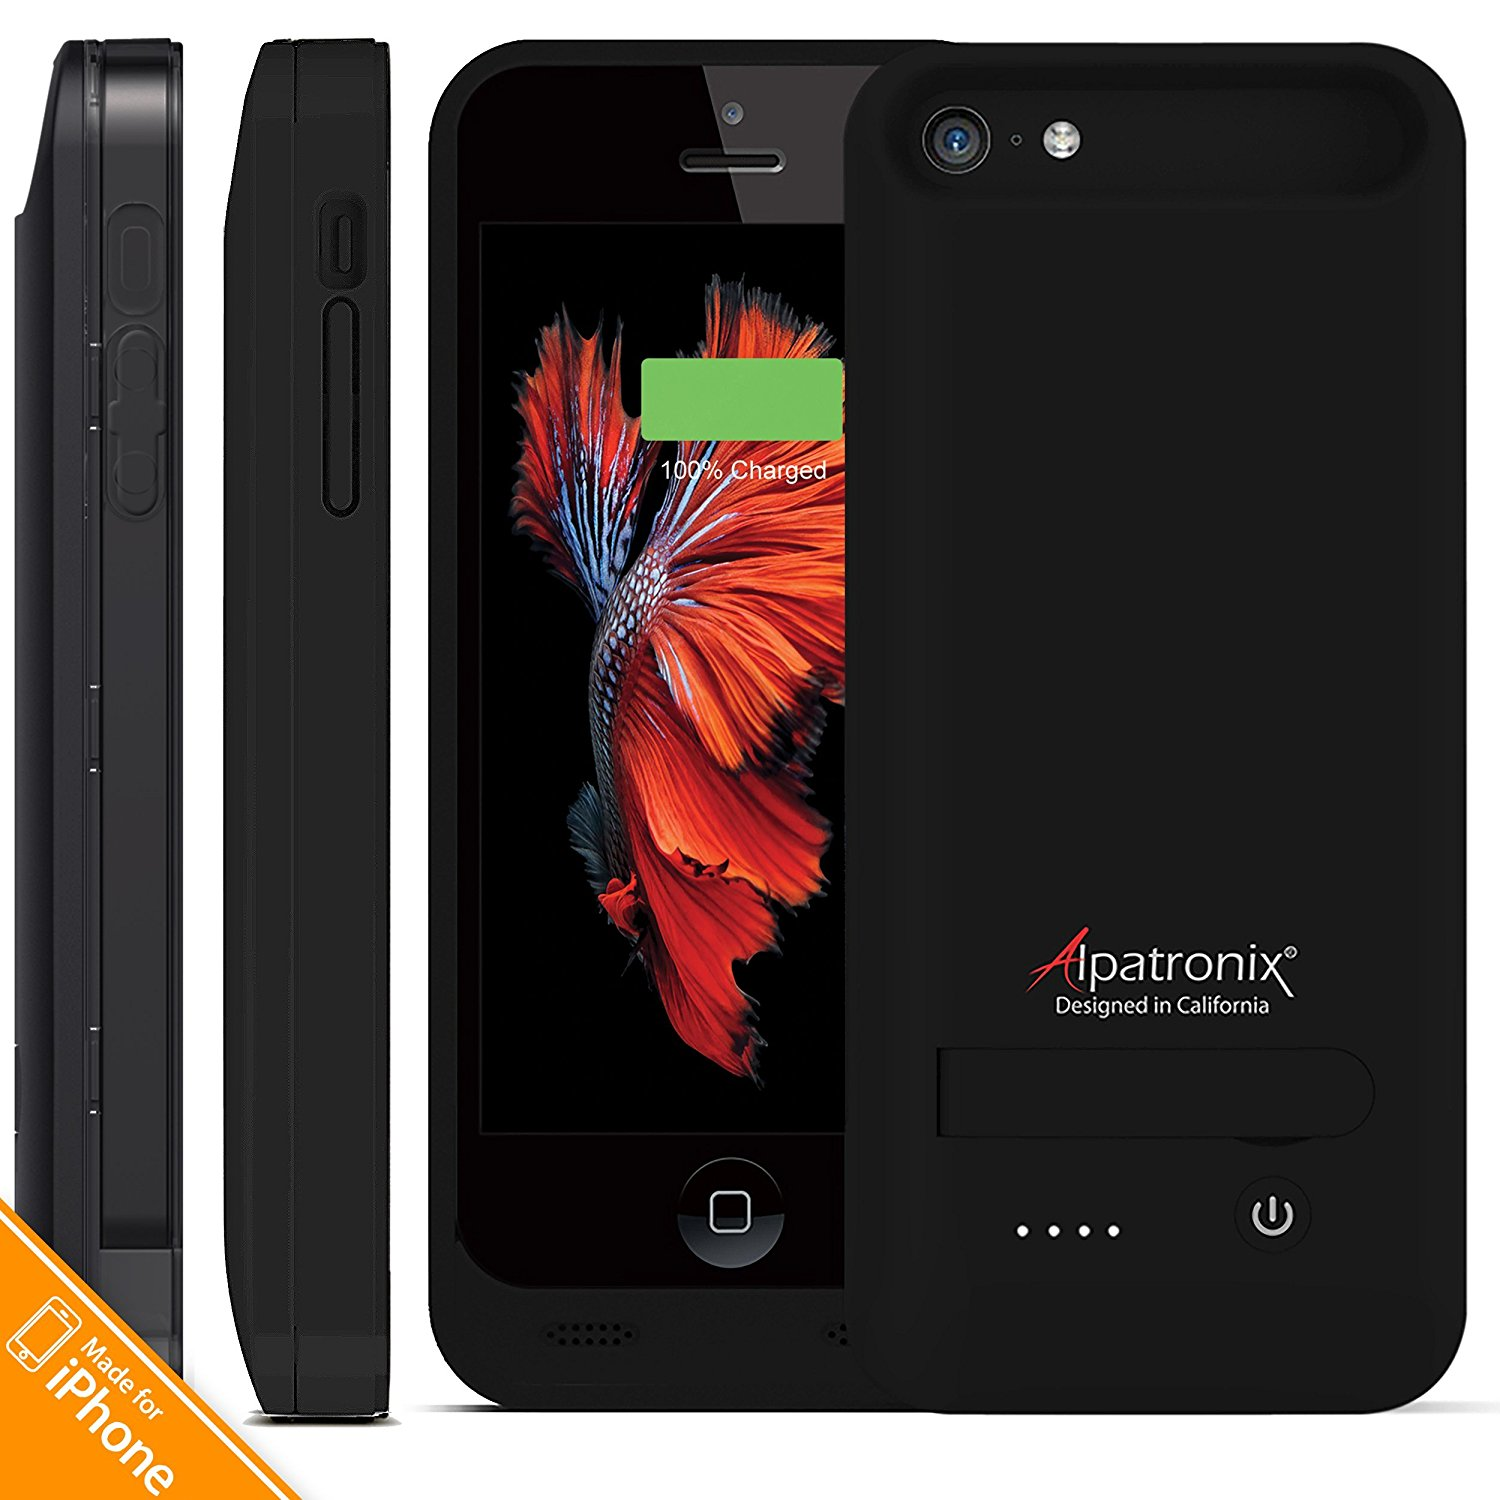 iPhone 5S / SE Battery Case, Alpatronix BX120 2400mAh Slim Protective External Rechargeable Portable Charging Case for iPhone SE, 5, 5S [MFi Certified, iOS 10+ Support] - Black